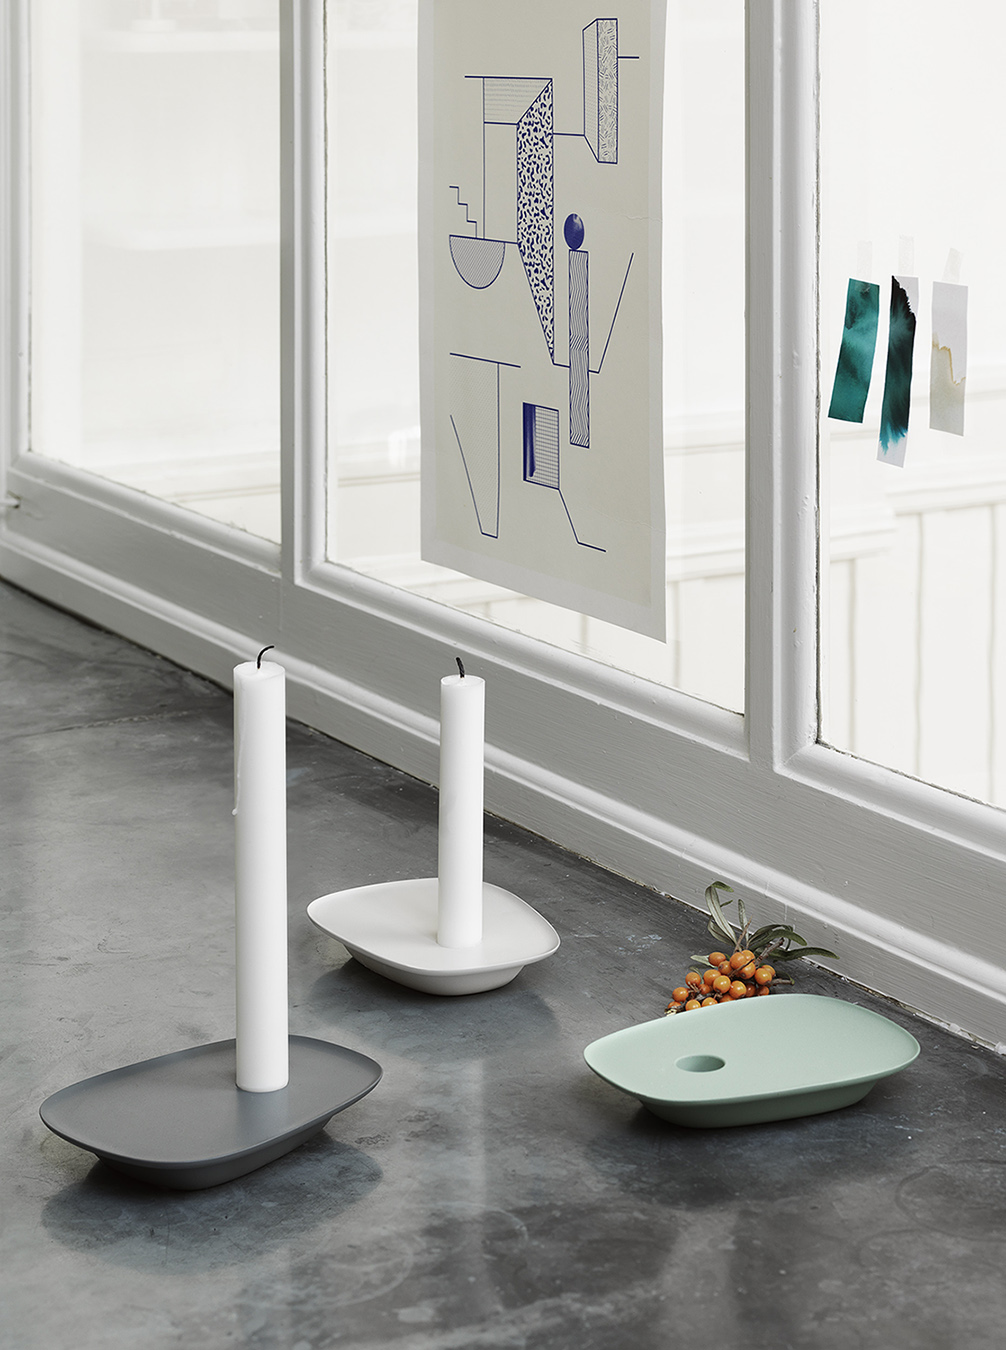 Float candlesticks by Anderssen & Voll for Muuto